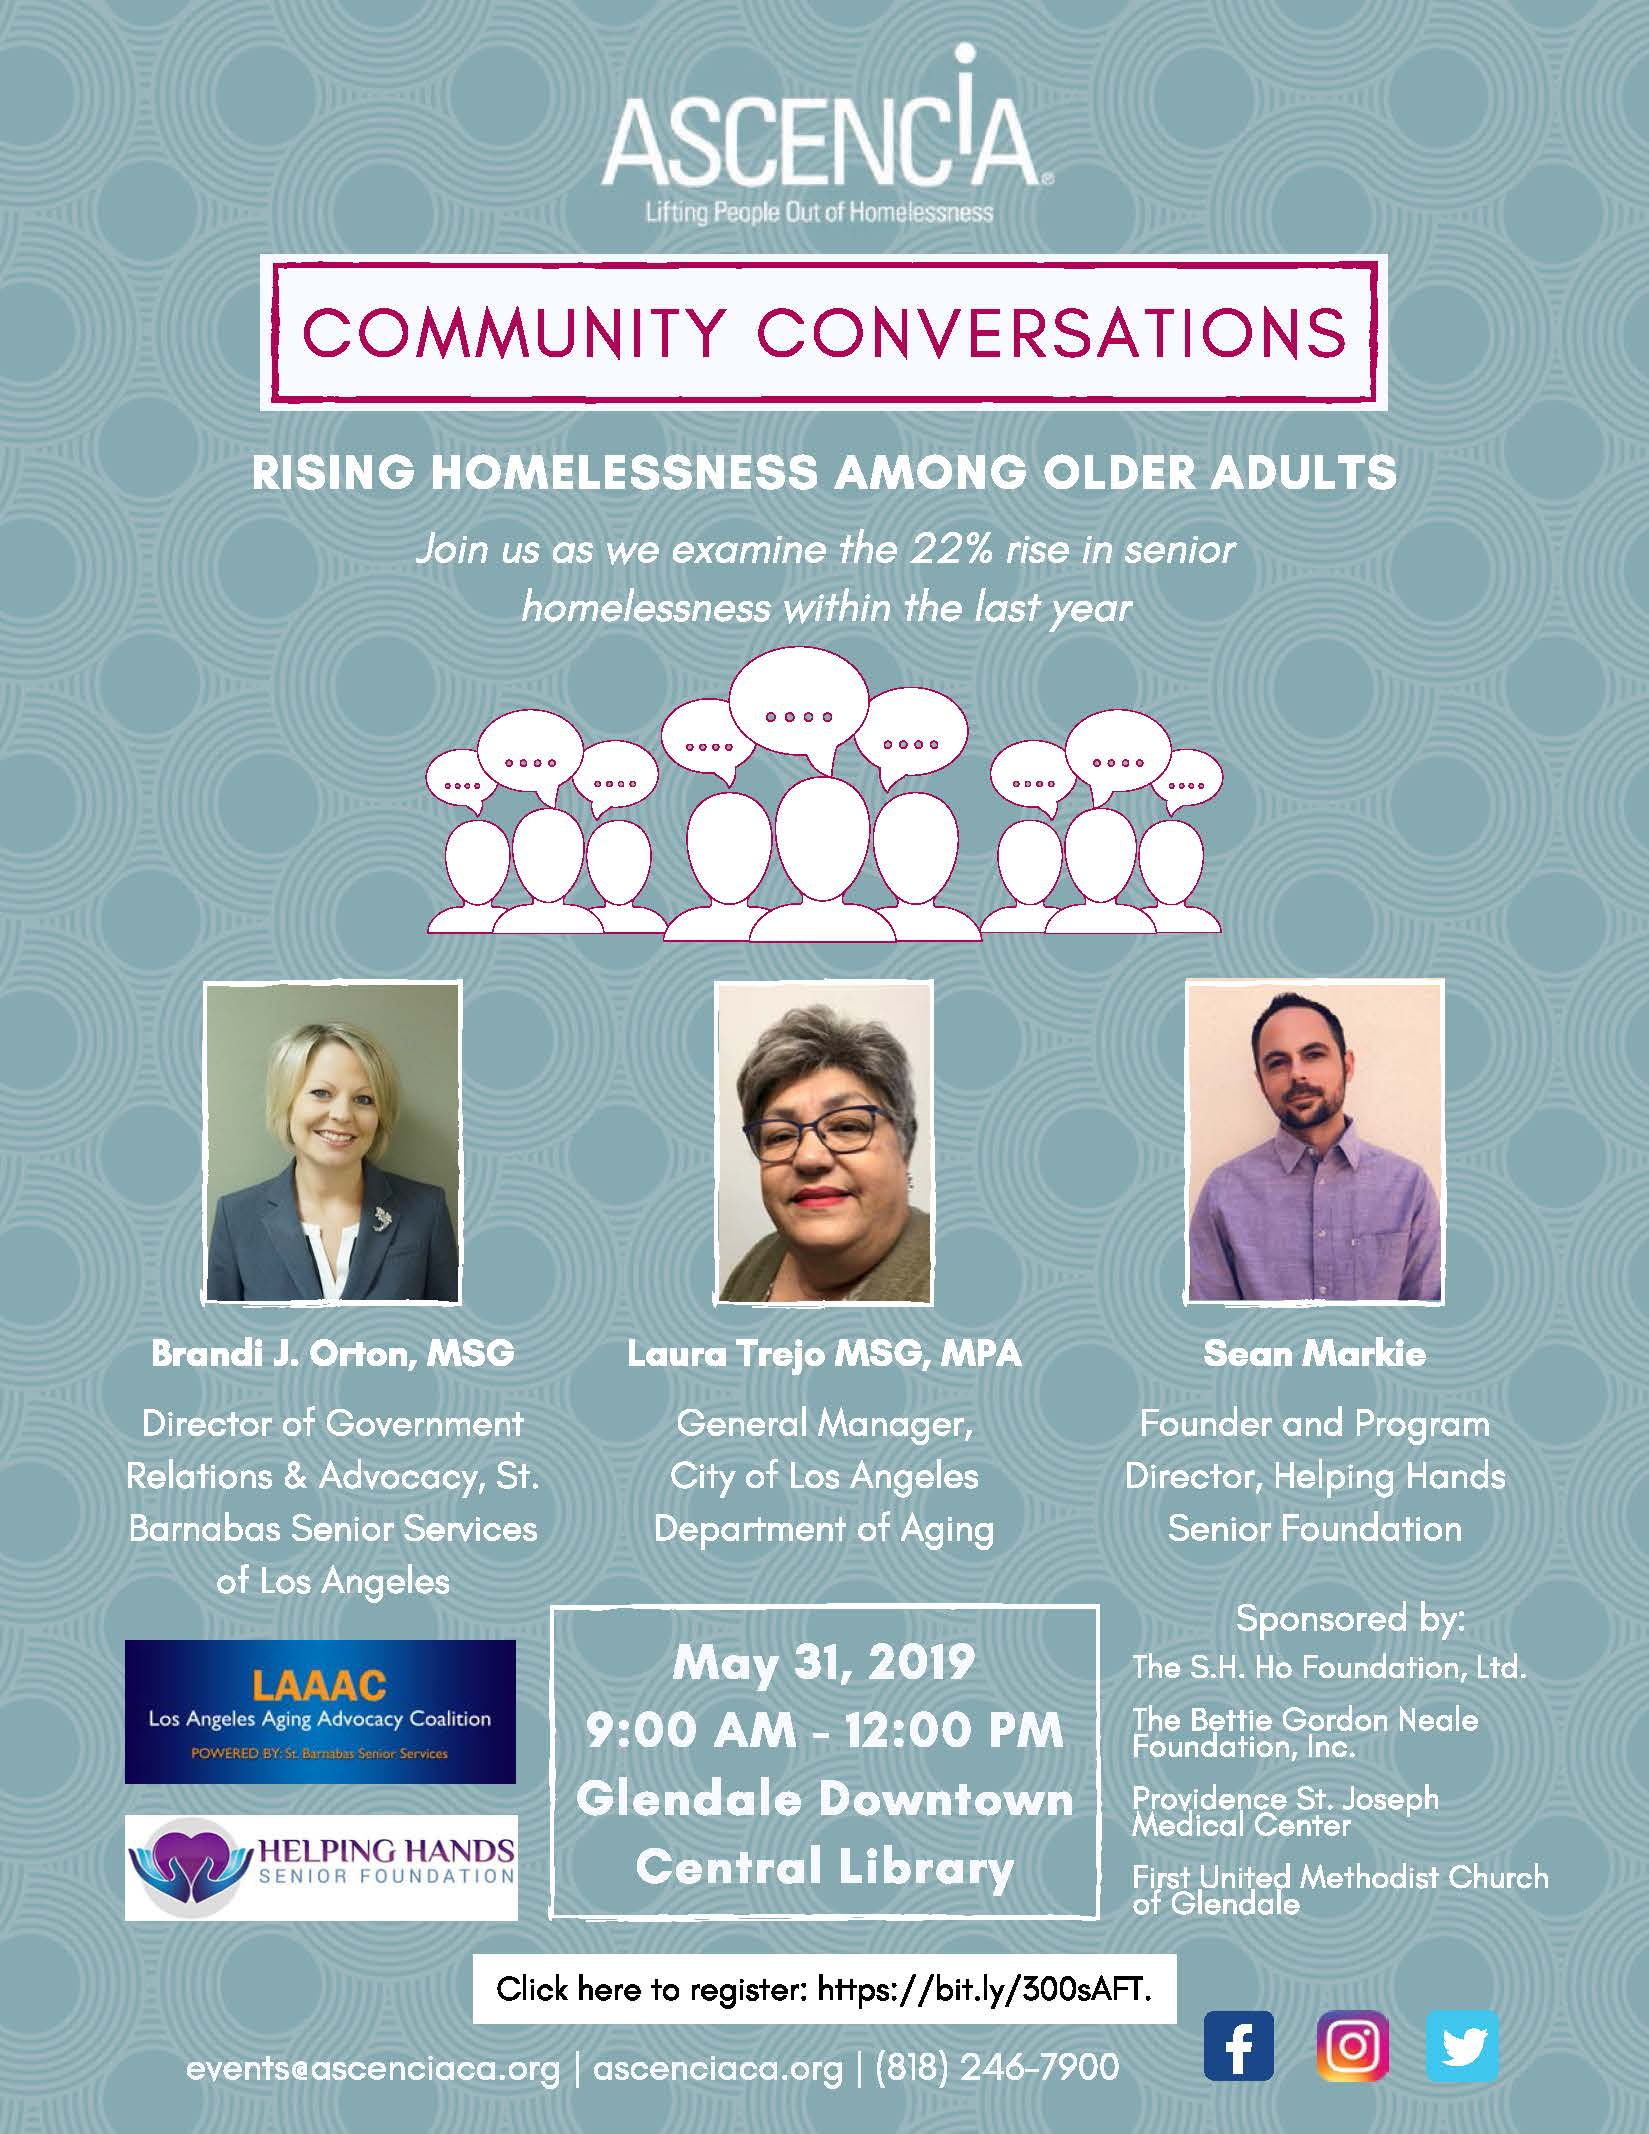 2019 Ascencia Community Conversations Flyer_smaller.jpg